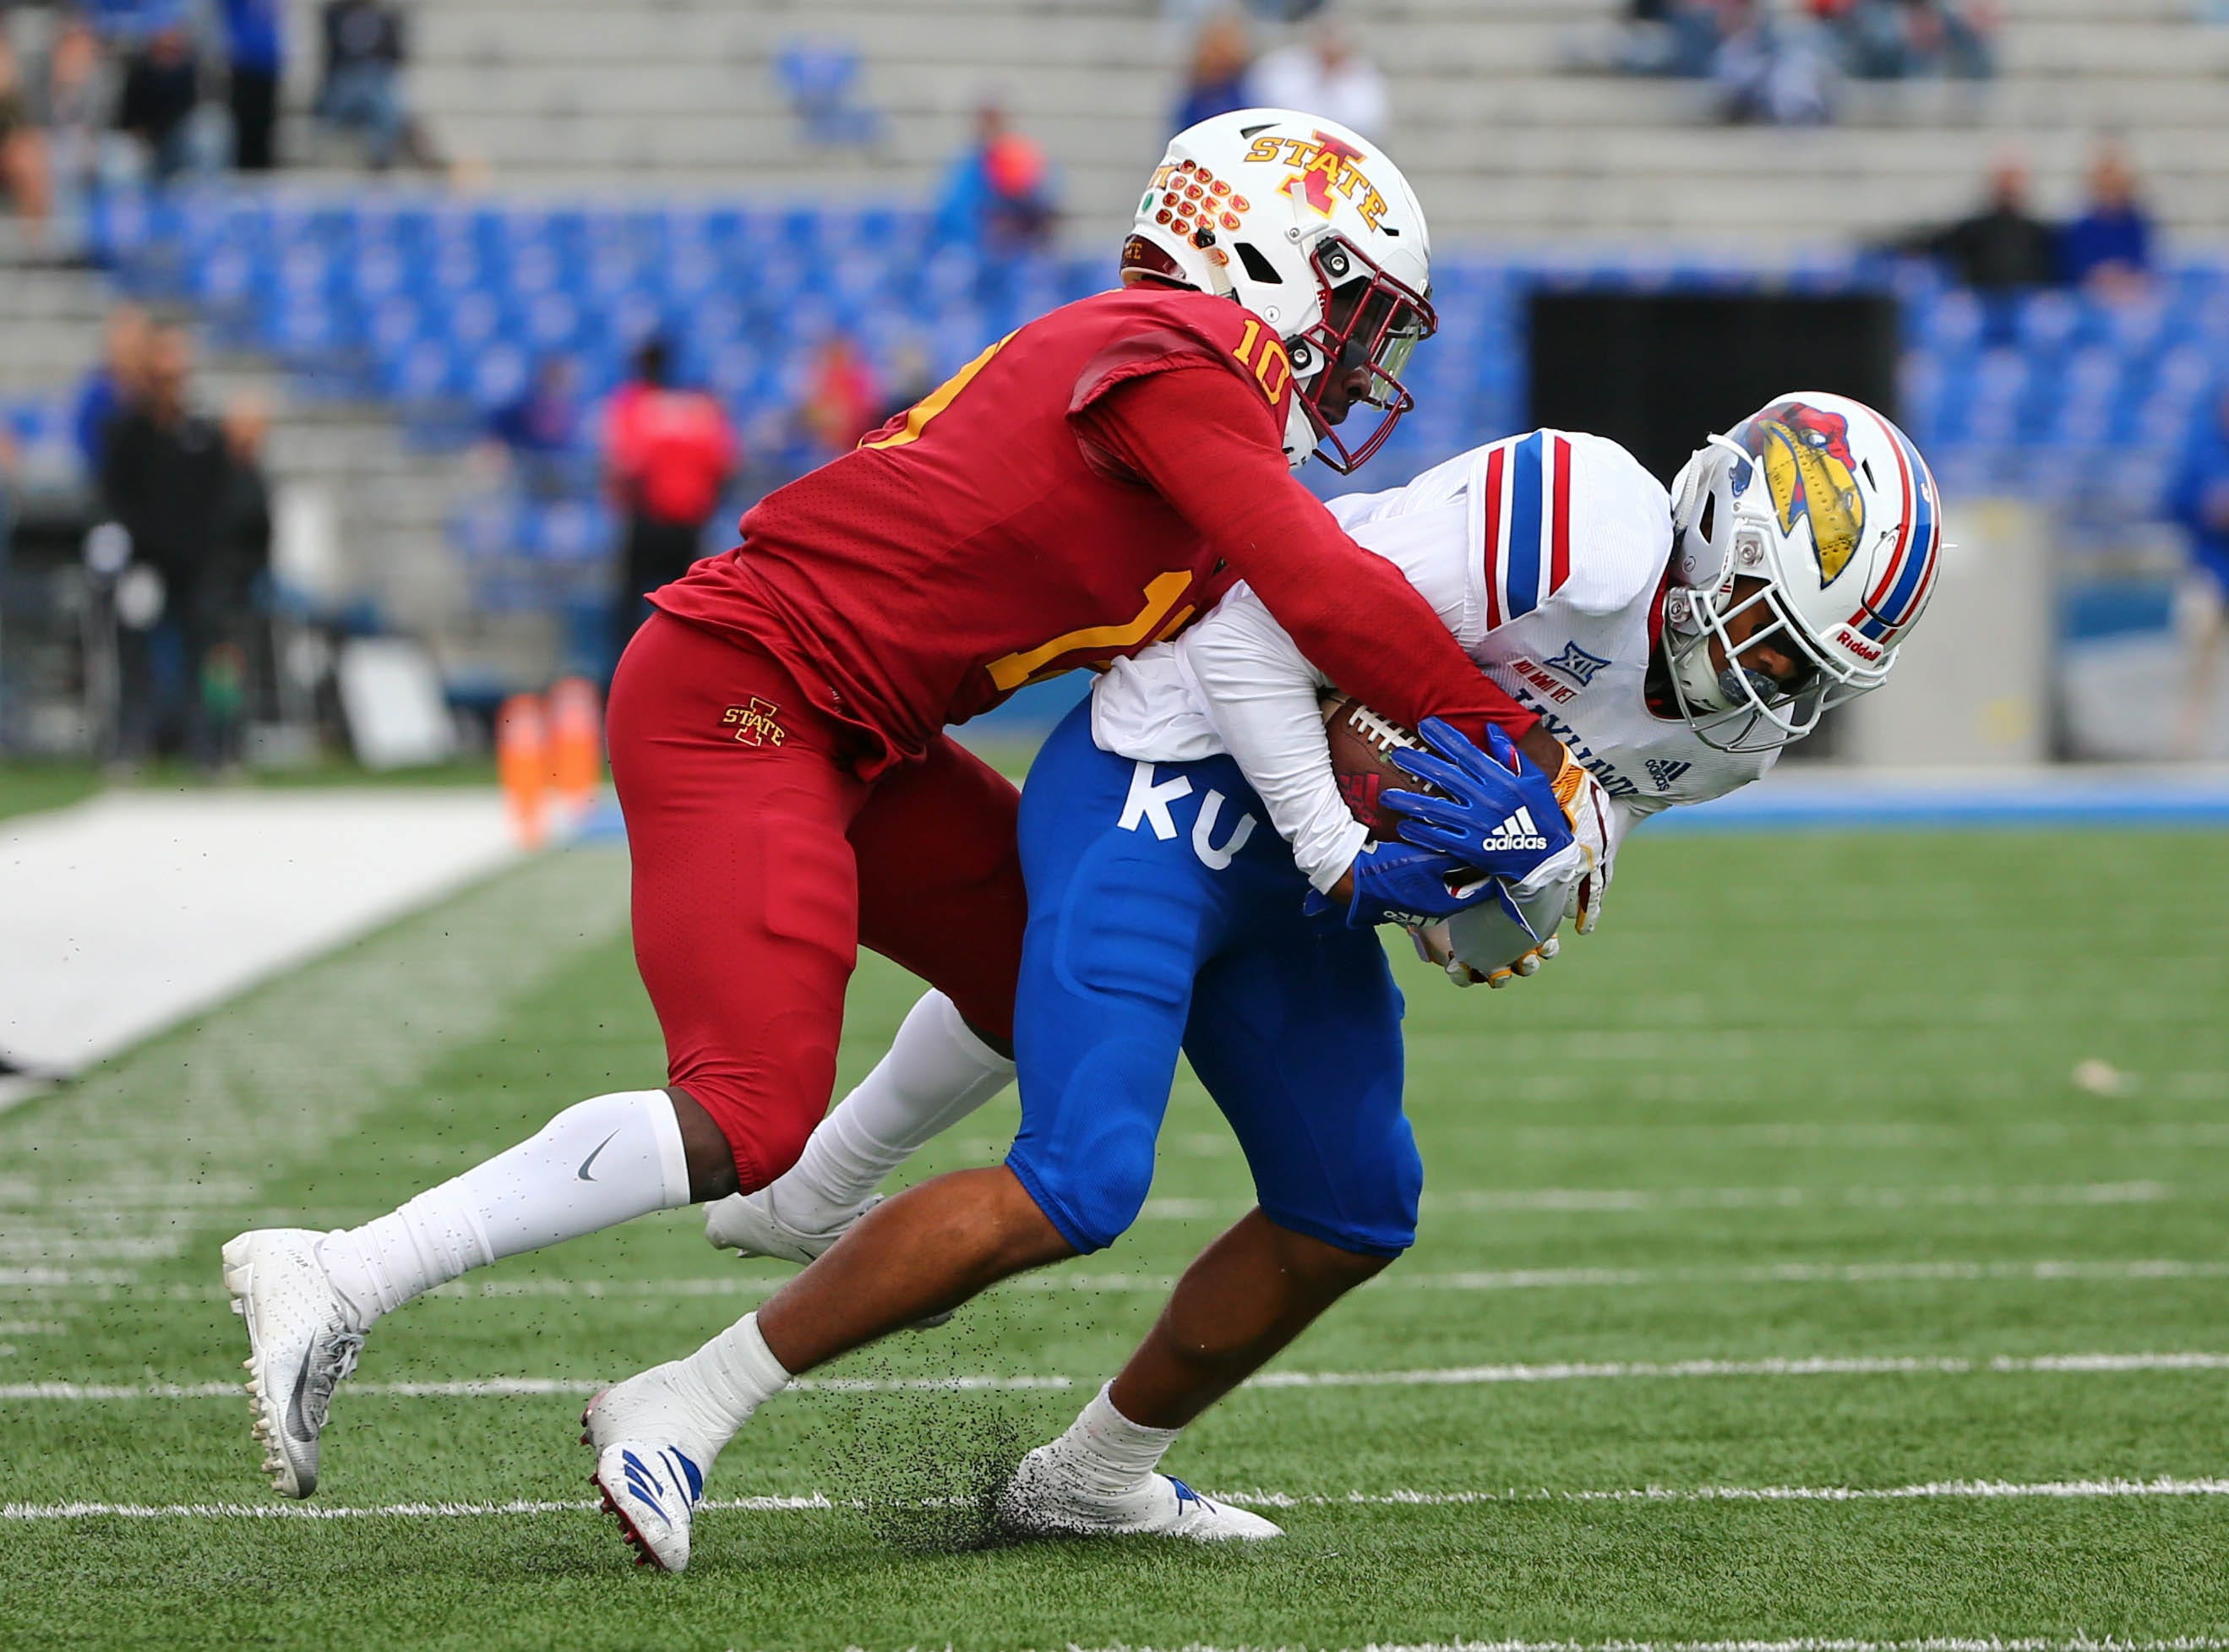 Nov 3, 2018; Lawrence, KS, USA; Iowa State Cyclones defensive back Brian Peavy (10) strips the ball from Kansas Jayhawks wide receiver Stephon Robinson (5) in the first half at Memorial Stadium.